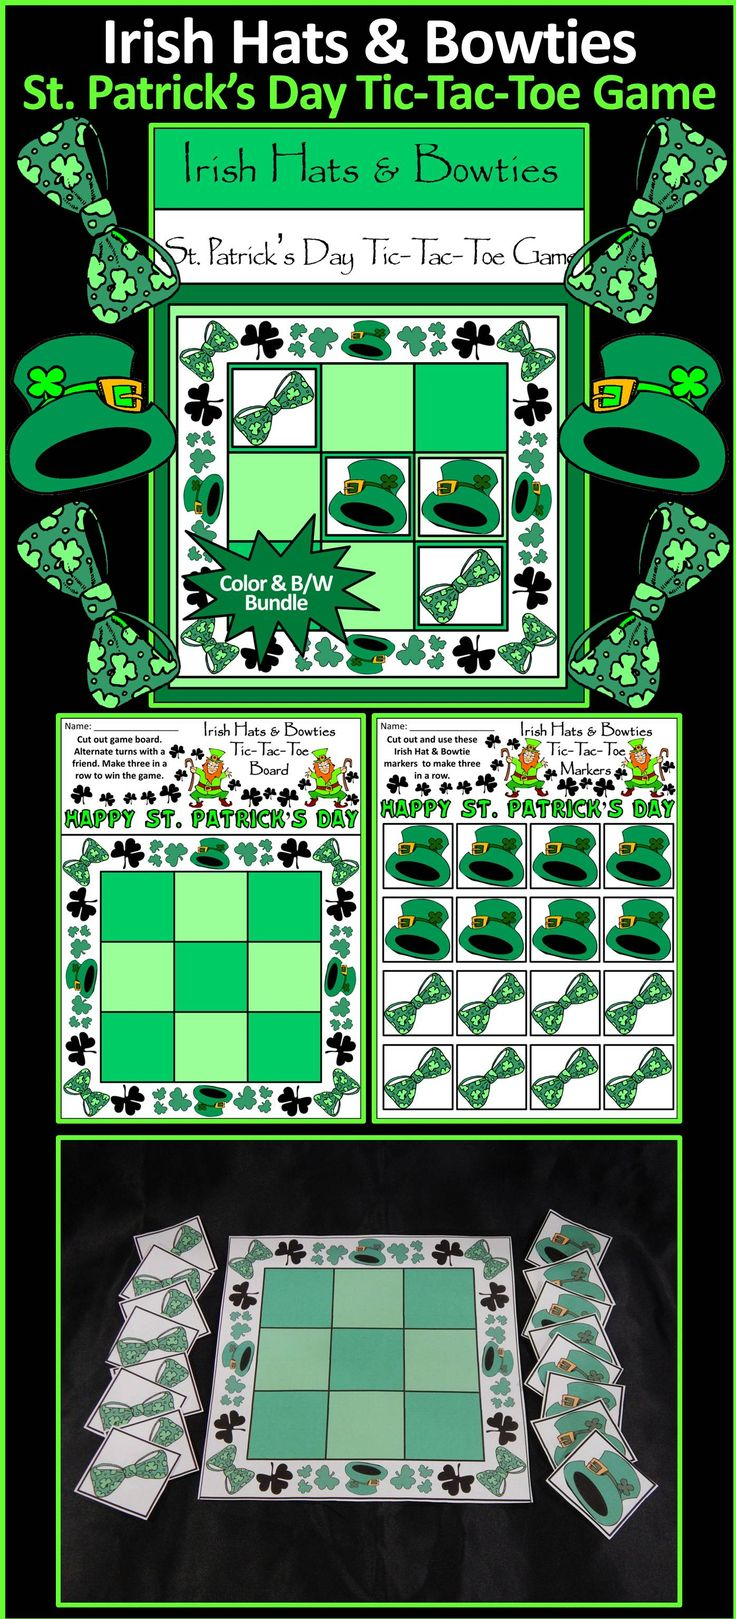 Irish Leprechaun Hats & Bowties & Rainbows St. Patrick's Day Tic-Tac-Toe Game: Contains all the necessary components for playing the classic game. All pieces are decorated with Irish Leprechaun Hats & Bowties for a rollicking Irish celebration! Great fun as a St. Patrick's Day game or party favor!  #St. #Saint #Patrick's #Day #Party #Game #Activities #Teacherspayteachers